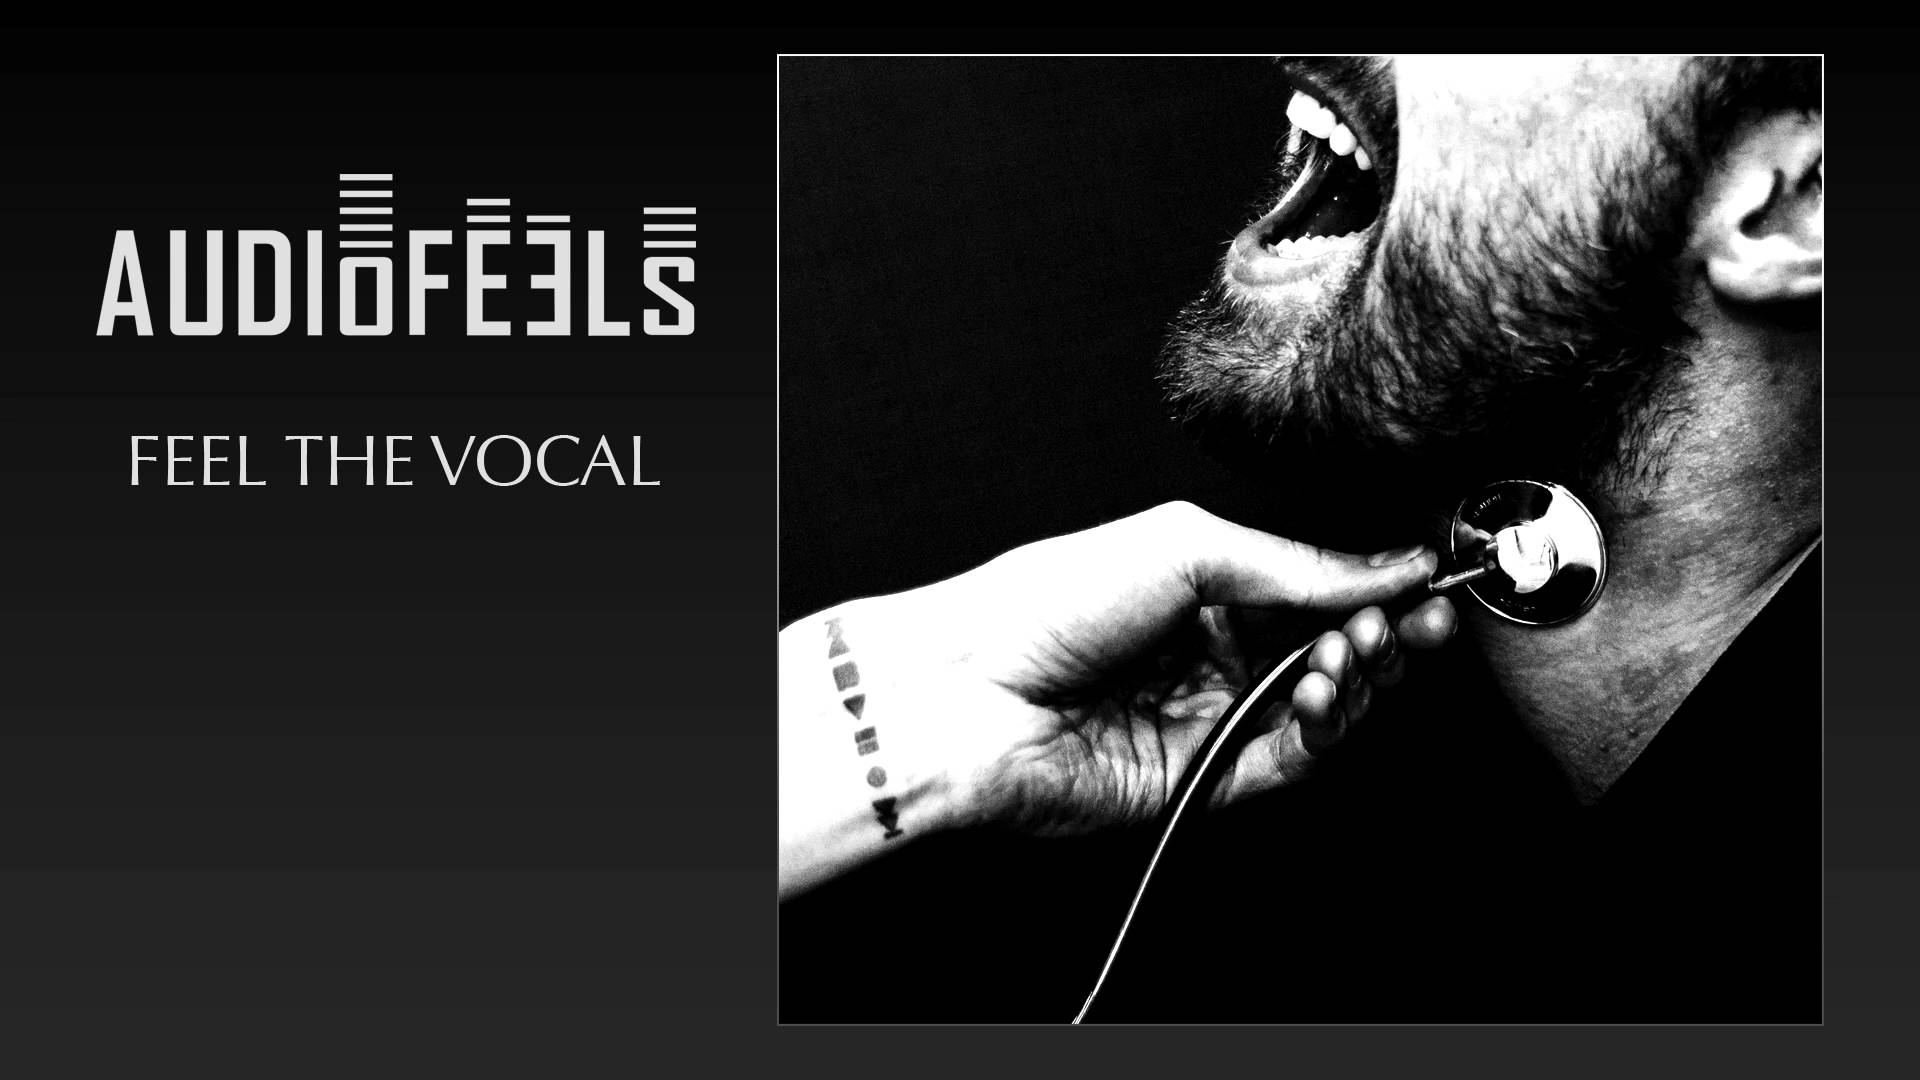 Feel the vocal